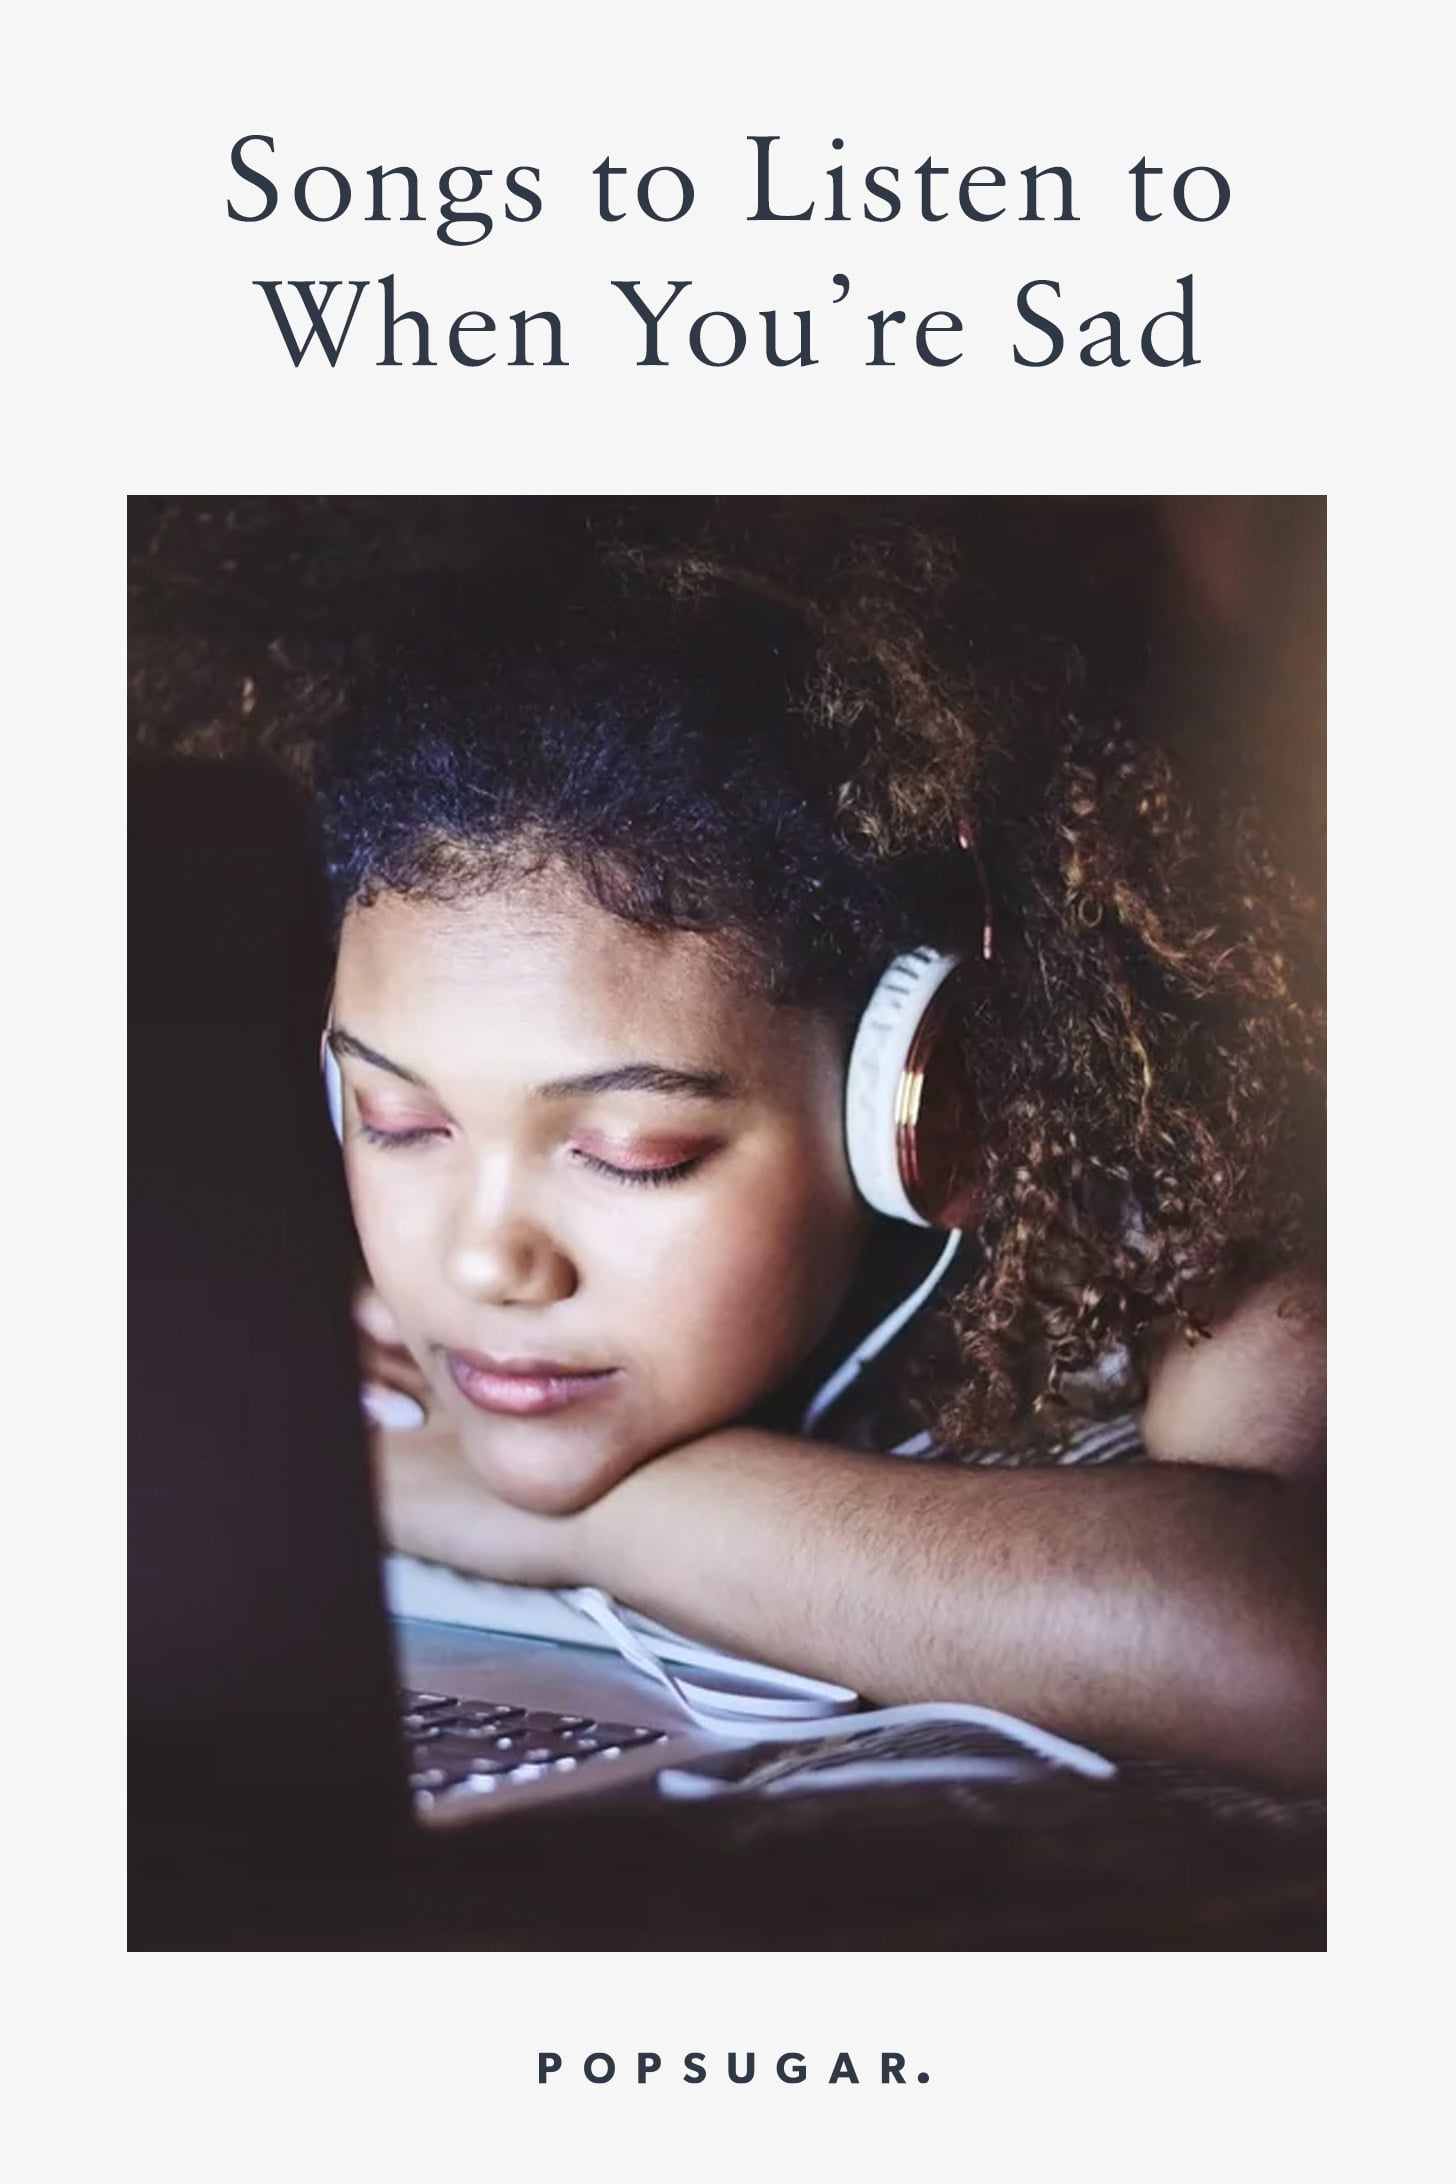 Songs to Listen to When You're Sad   POPSUGAR Smart Living